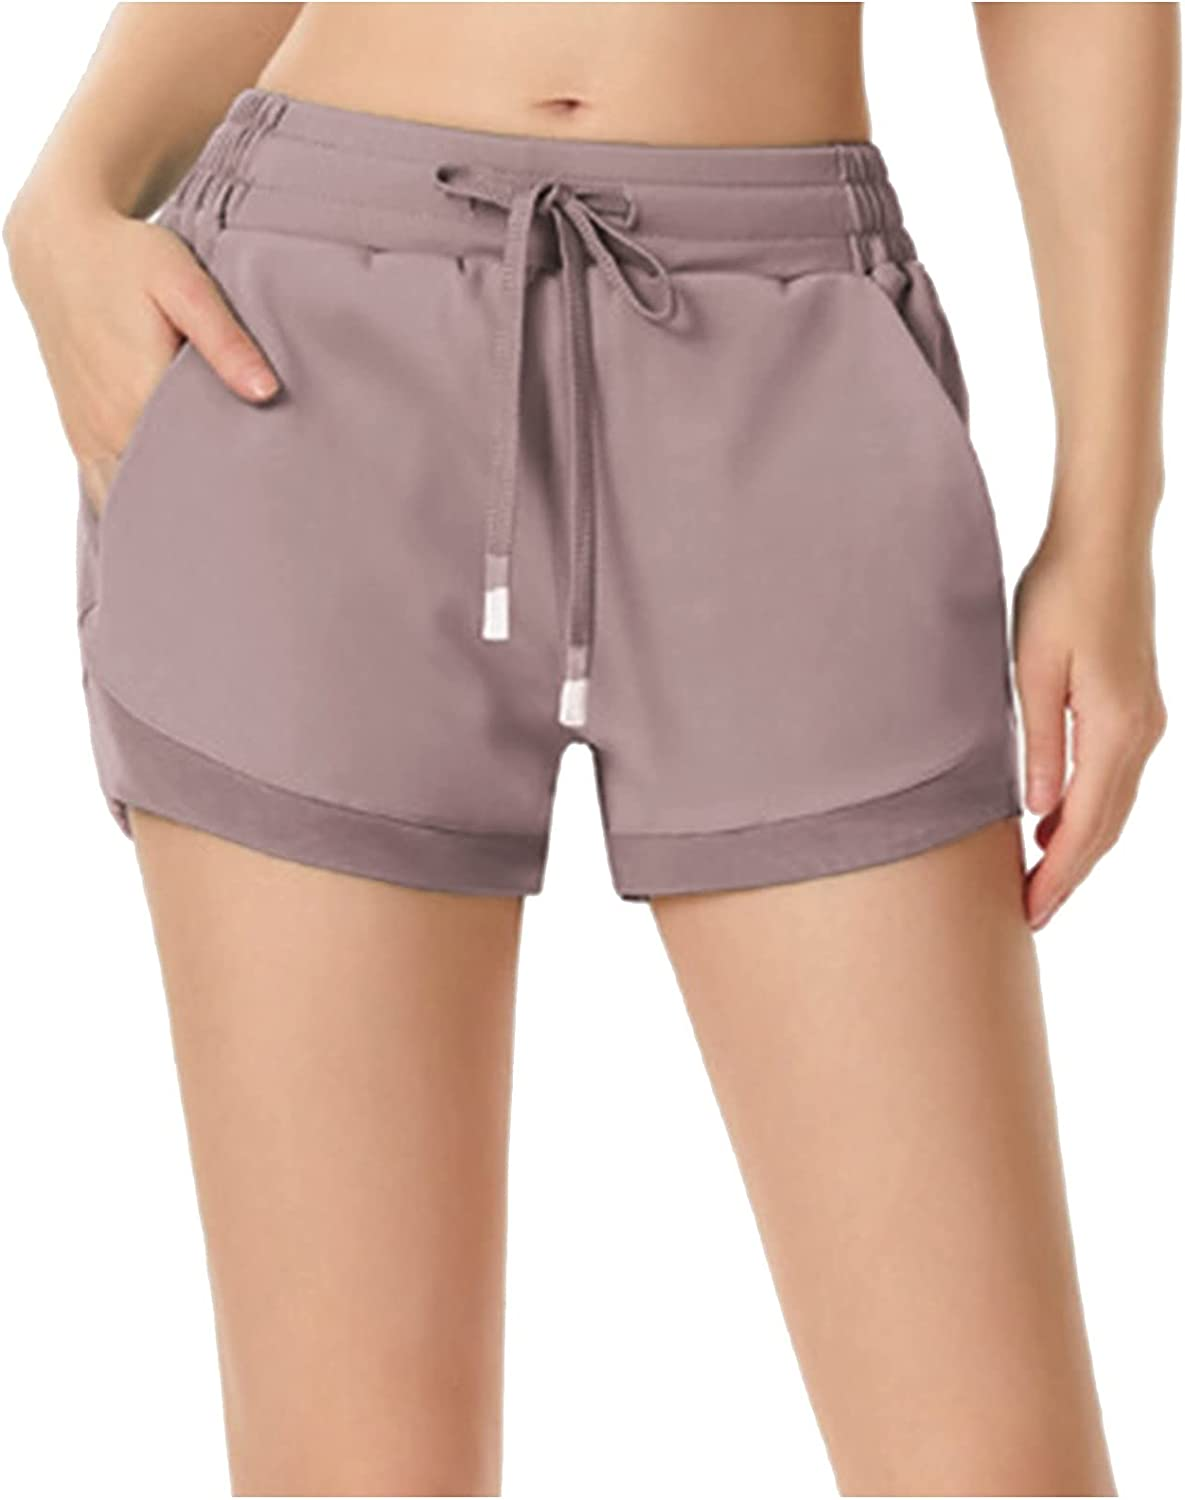 BEUU Womens High Waisted Yoga Shorts 2021, Drawstring Comfy Lounge Active Workout Running Pants with 2 Front Pockets